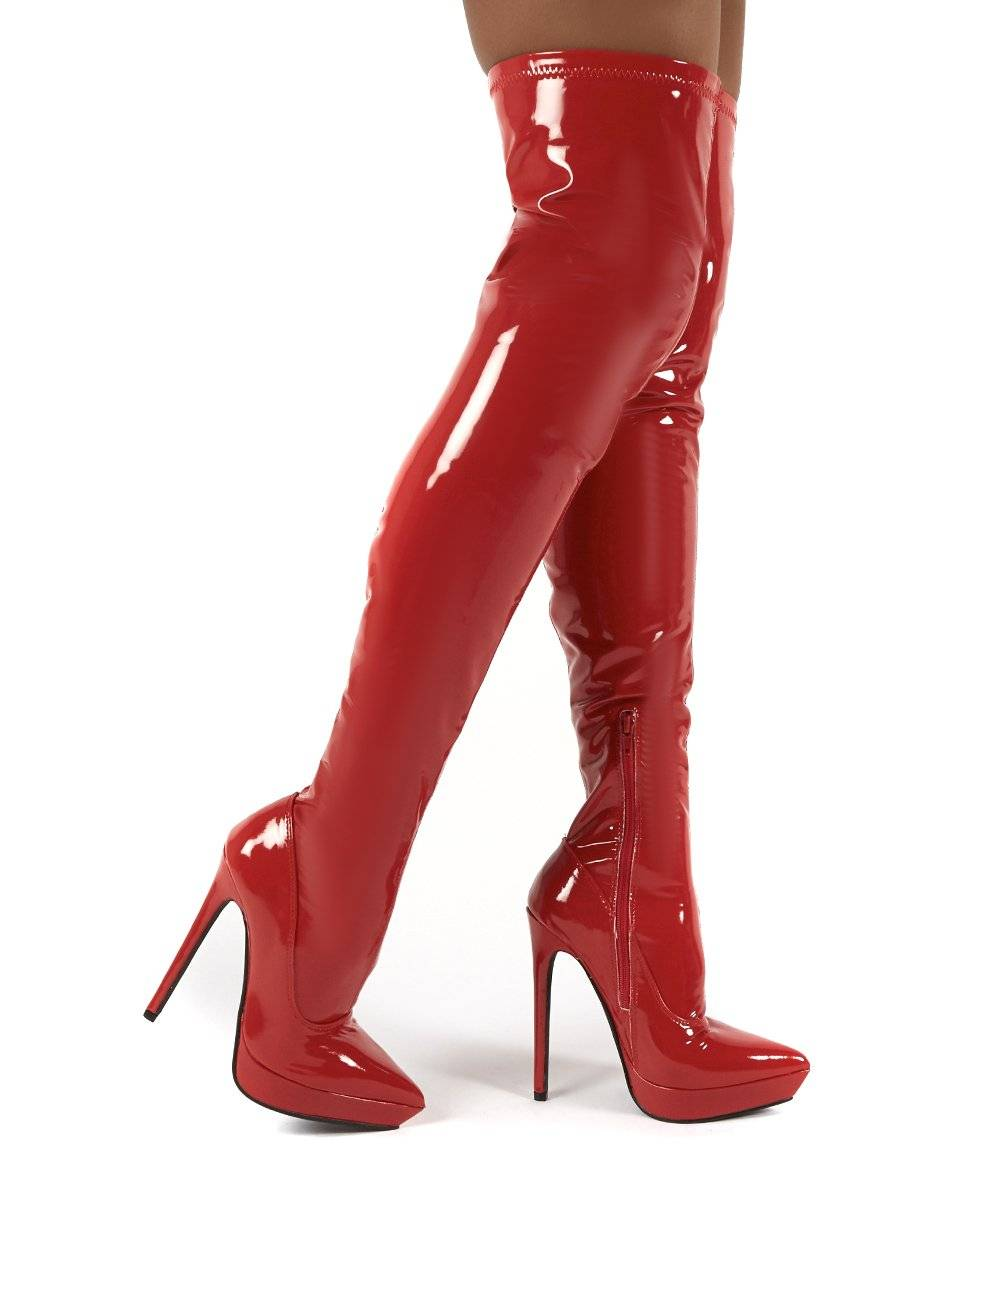 Public Desire US Forward Red Patent Stiletto Heeled Over the Knee Boots - US 6